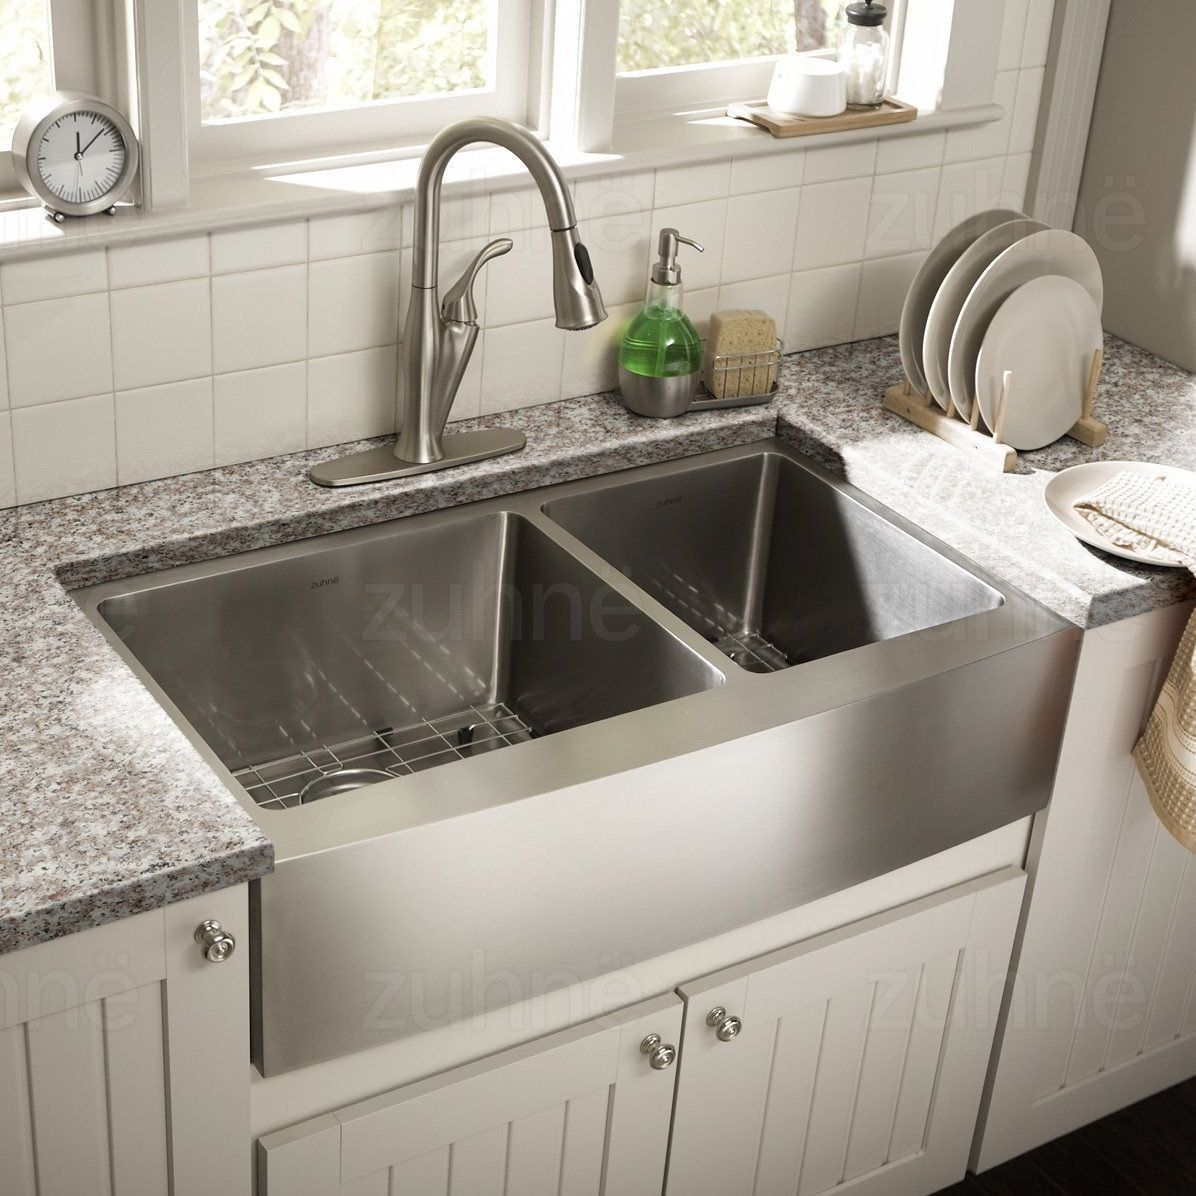 Stainless Steel Farmhouse Sinks Apron Front Sinks Best Kitchen